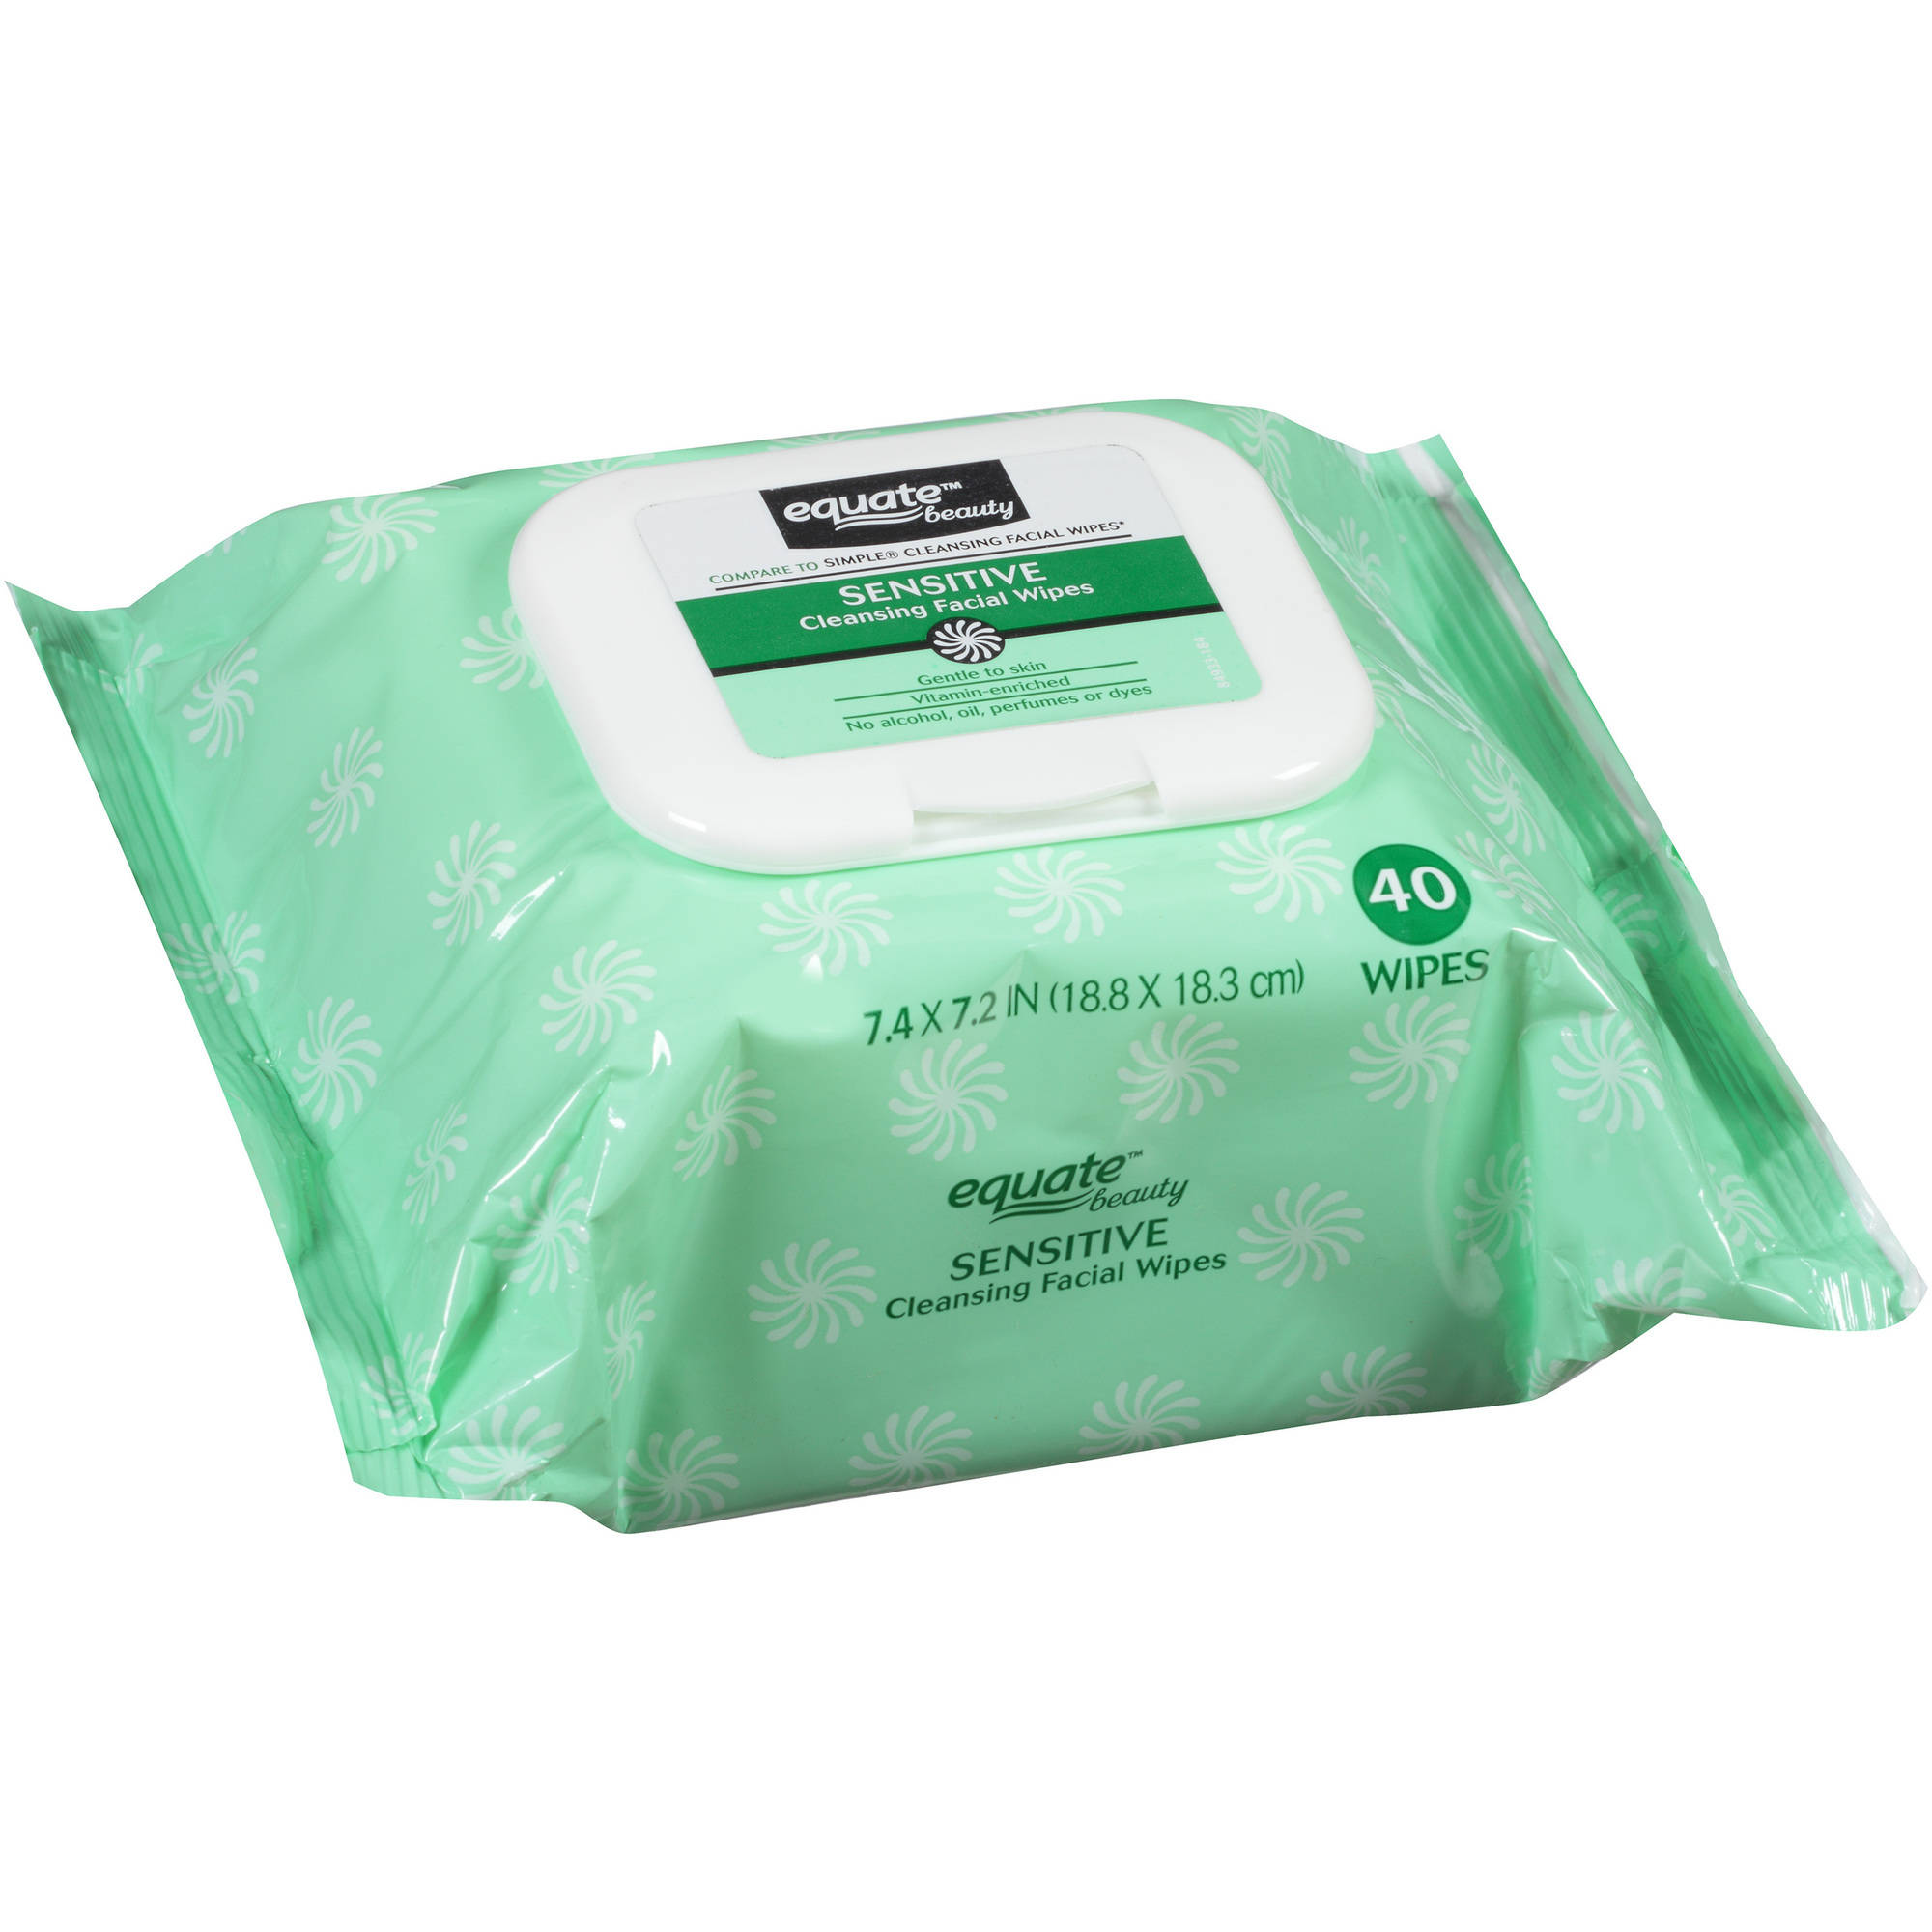 Equate Beauty Sensitive Cleansing Facial Wipes, 40 sheets